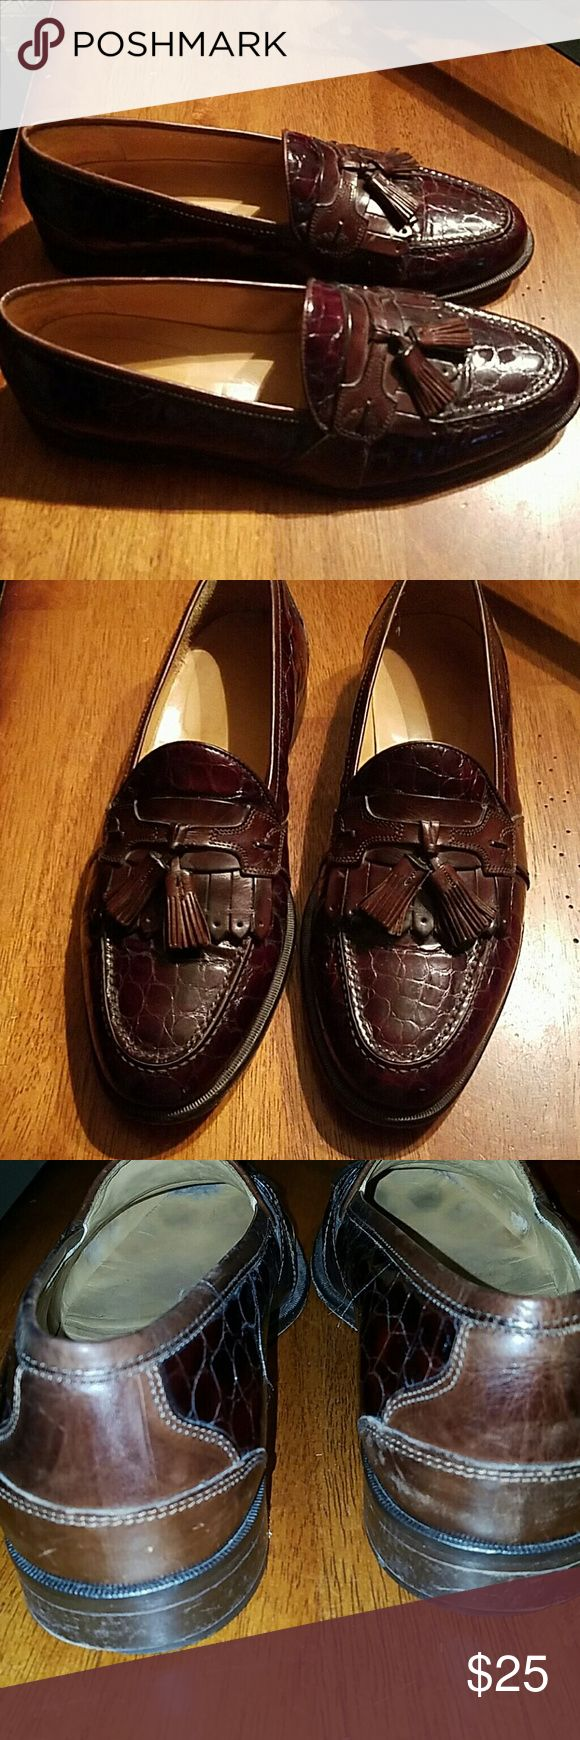 JOHNSON AND MURPHY LOAFERS SIZE 10 ITALIAN Johnston and Murphy men's alligator skin loafers with tassel excellent condition minimal wear Johnston & Murphy men's alligator skin loafers with tassel excellent condition minimal wear. Size 10 Johnson and Murphy  Shoes Loafers & Slip-Ons